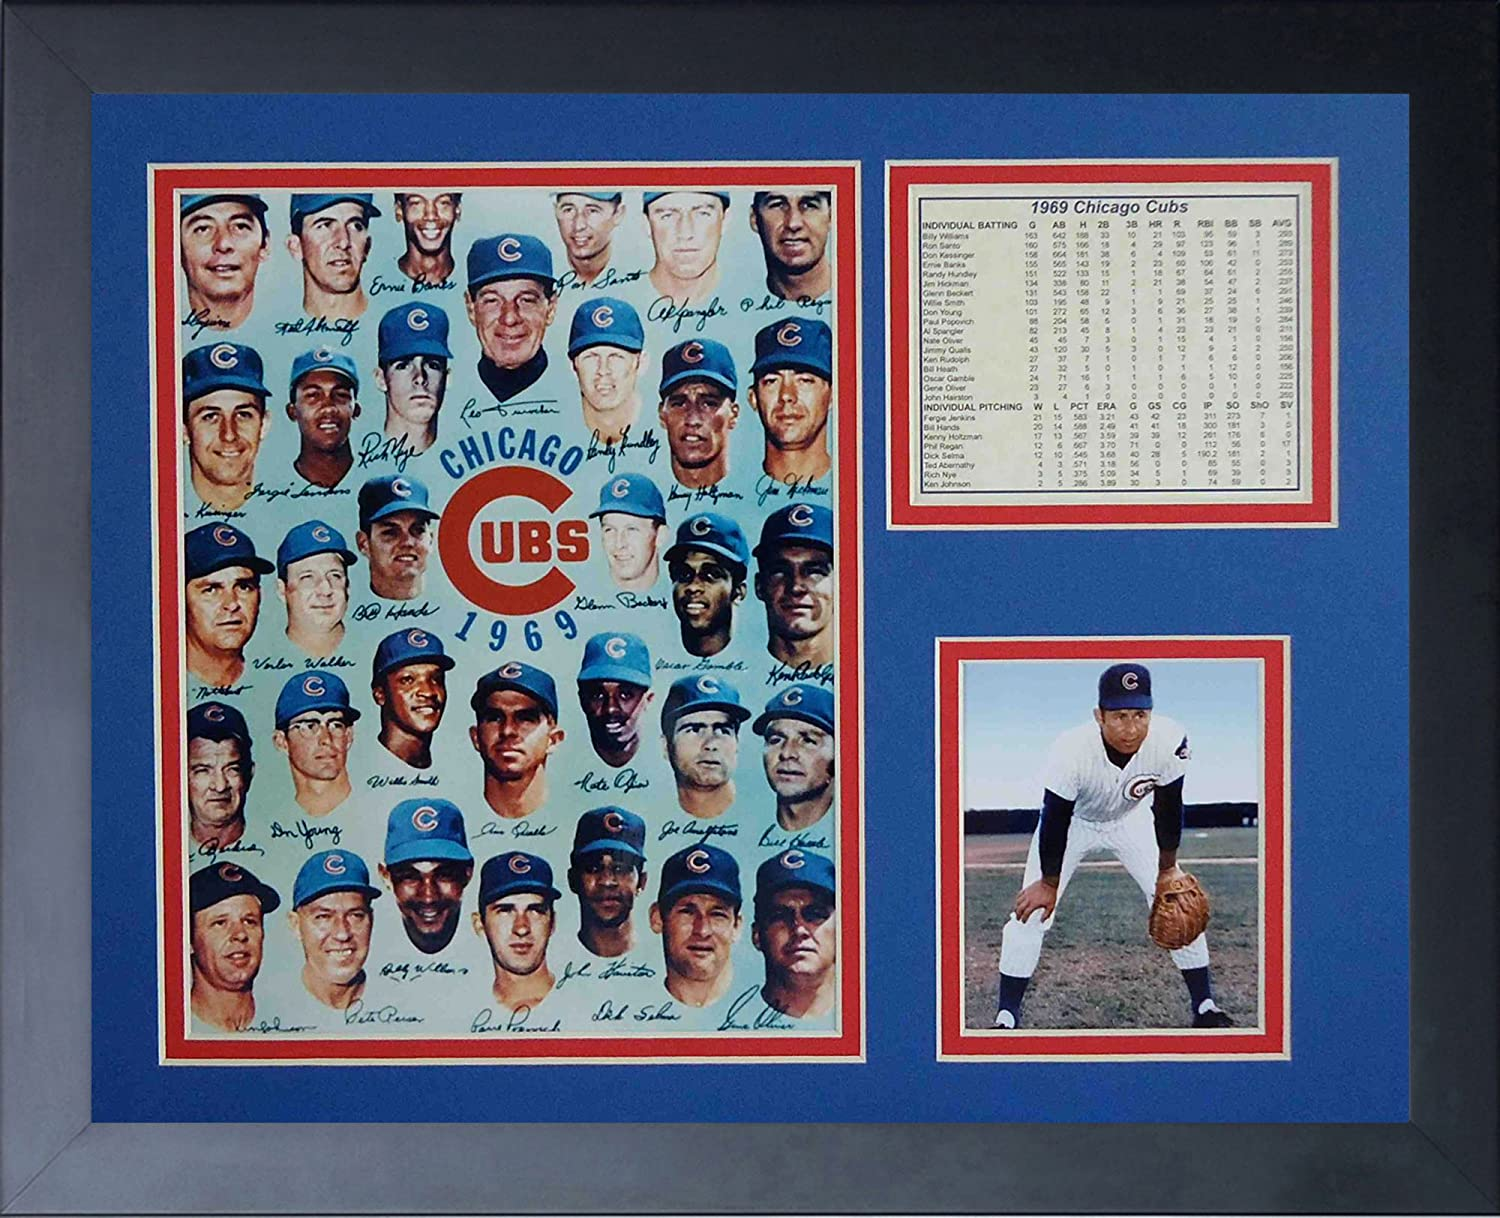 11x14-Inch Legends Never Die 1969 Chicago Cubs Framed Photo Collage